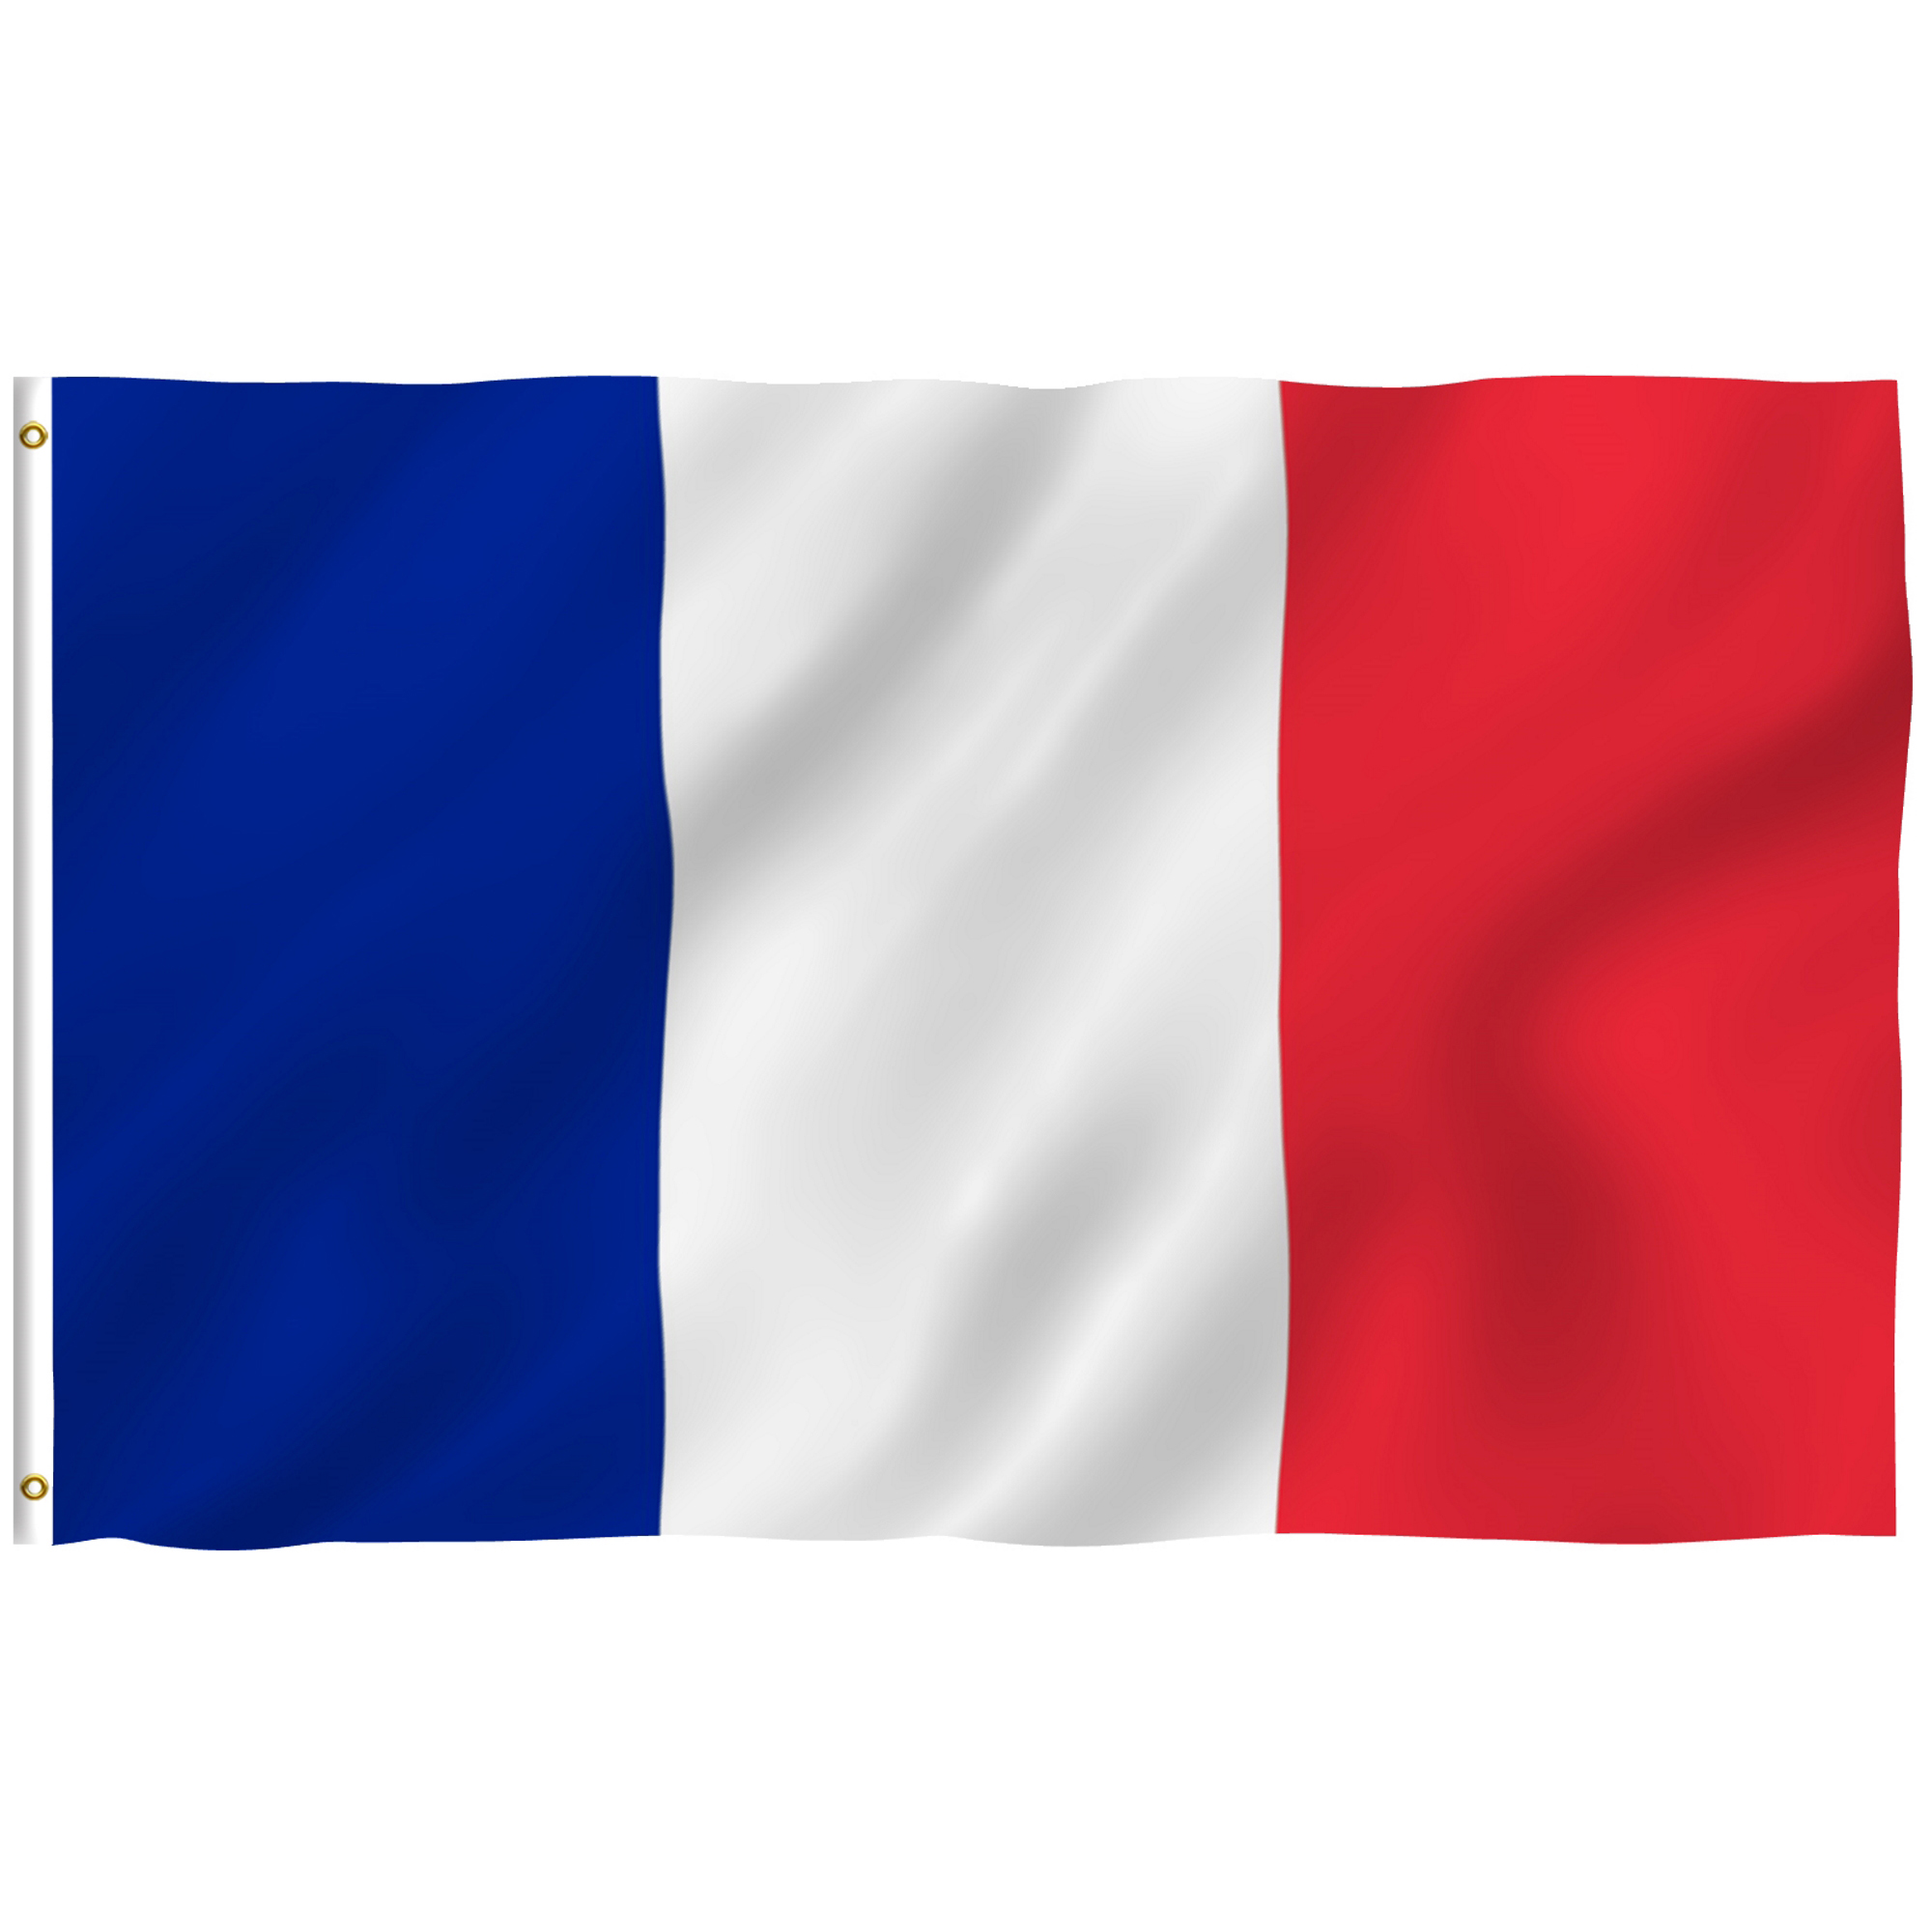 ANLEY [Fly Breeze] 3x5 Feet French Flag - Vivid Color and UV Fade Resistant - Canvas Header and Brass Grommets - France FR Banner Flags